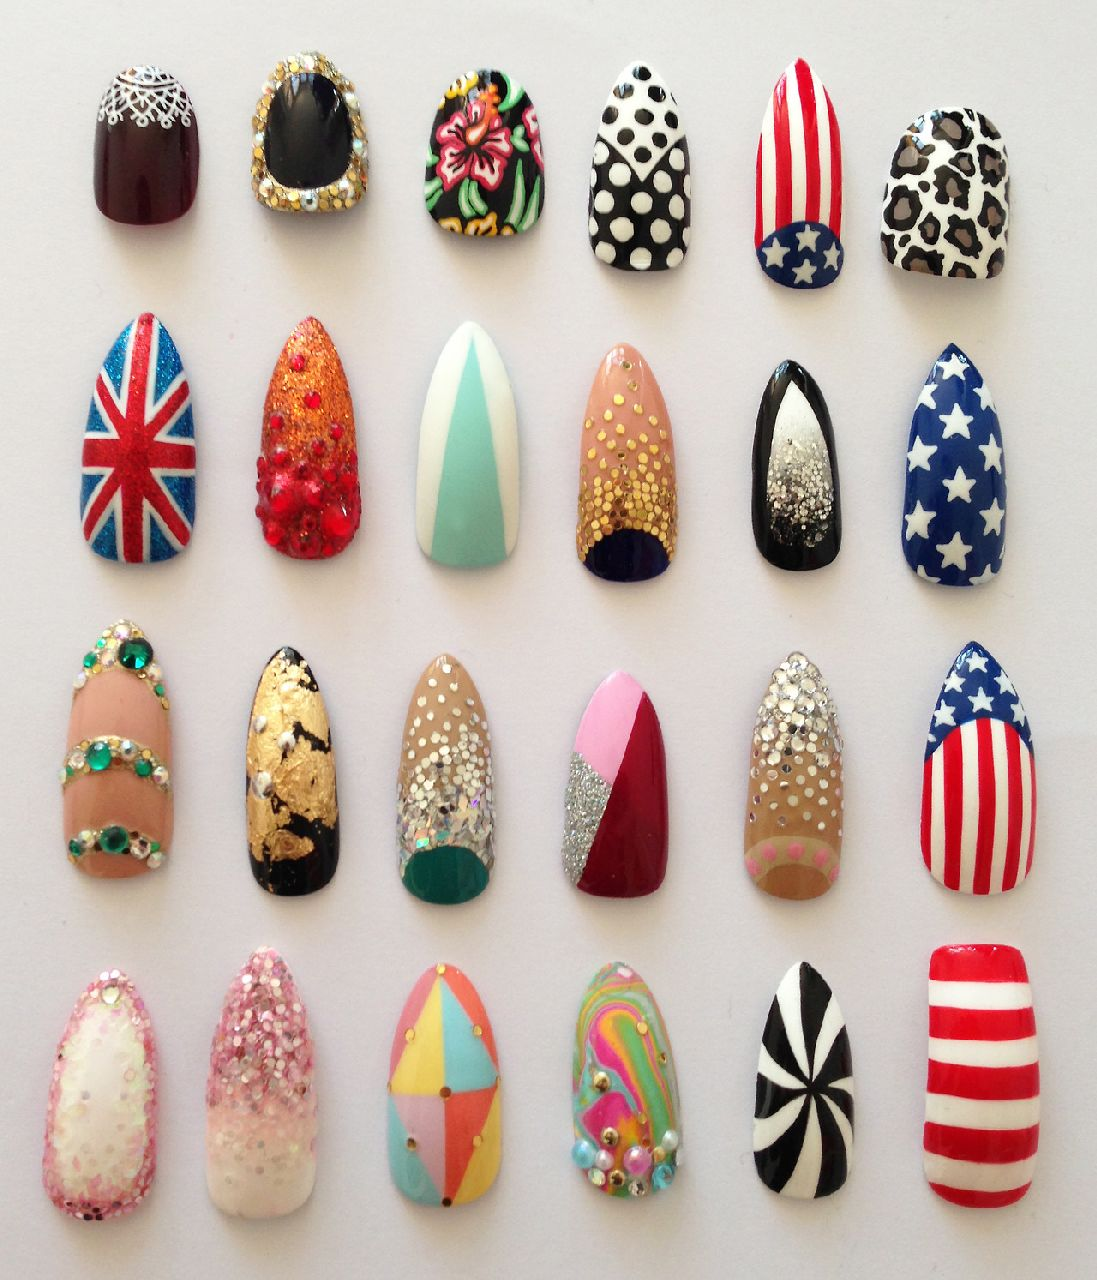 Pretty Nail Art Designs: Nail Art Designs Latest Concepts 2014 For Girls